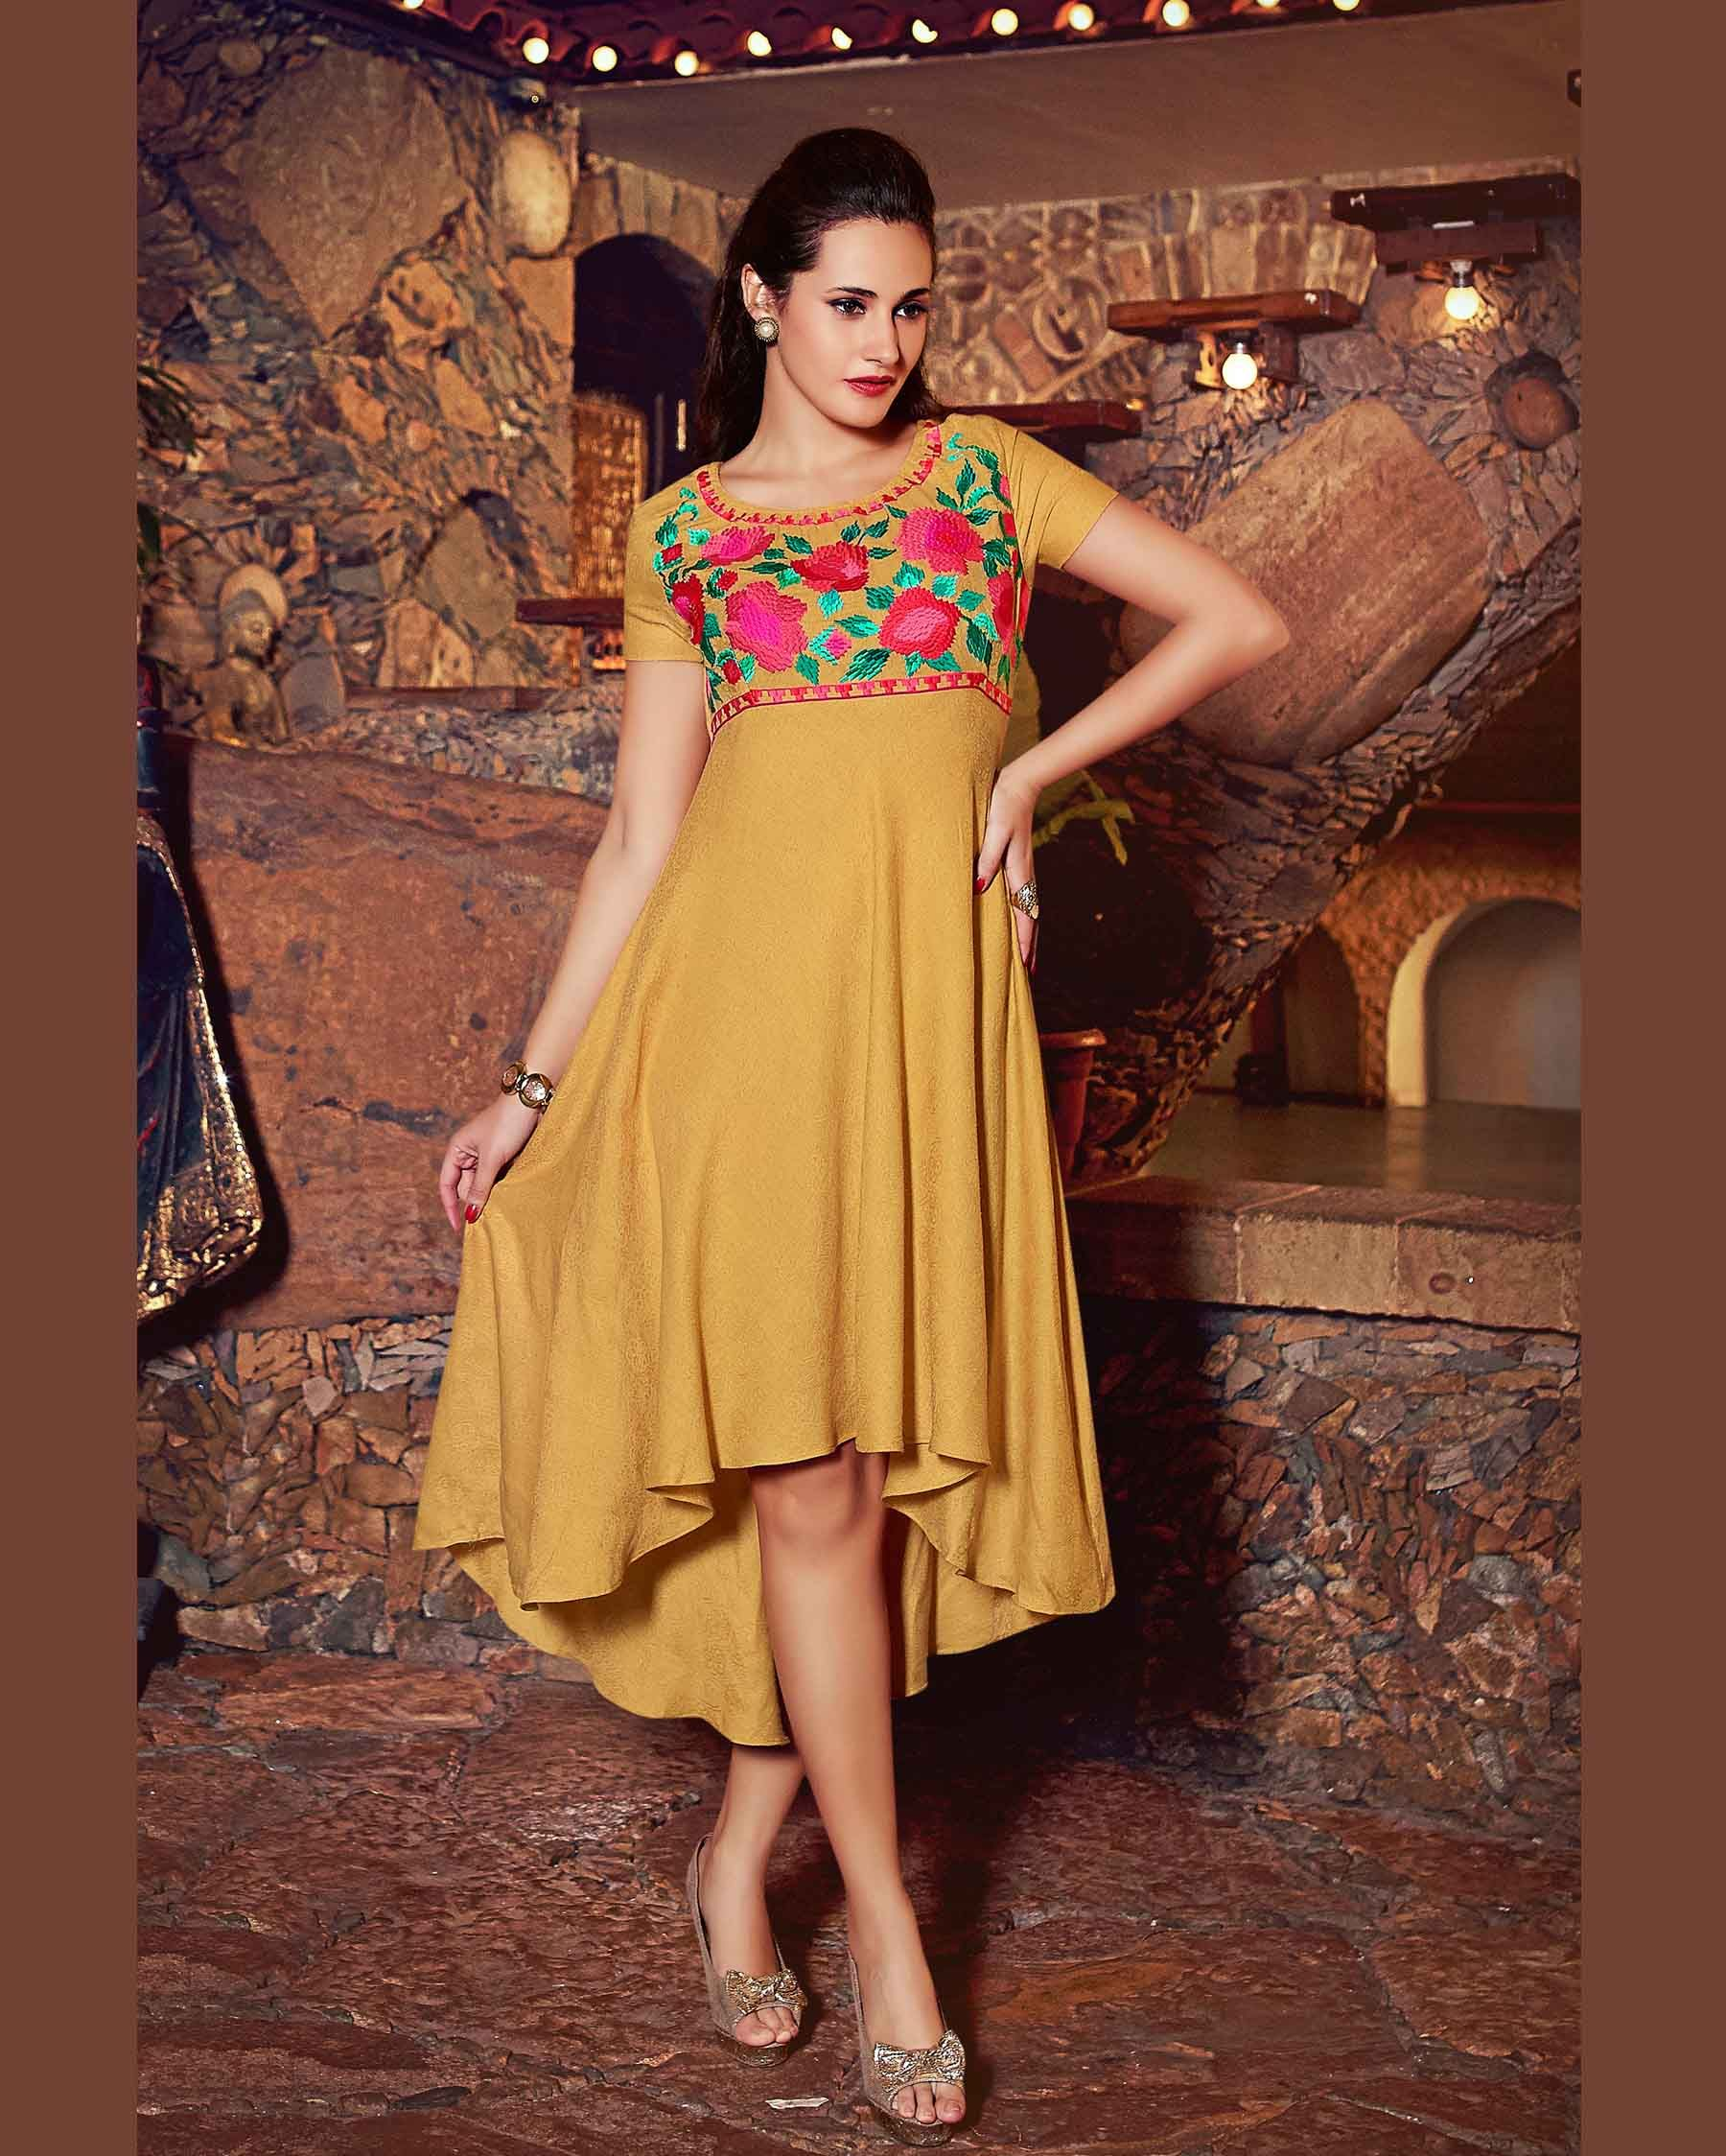 Beige   lush Embroidered Pure Linen Tunic kurtis       Fabric:   Pure Linen       Work:   Embroidered       Type:   Tunic kurtis       Color:   Beige